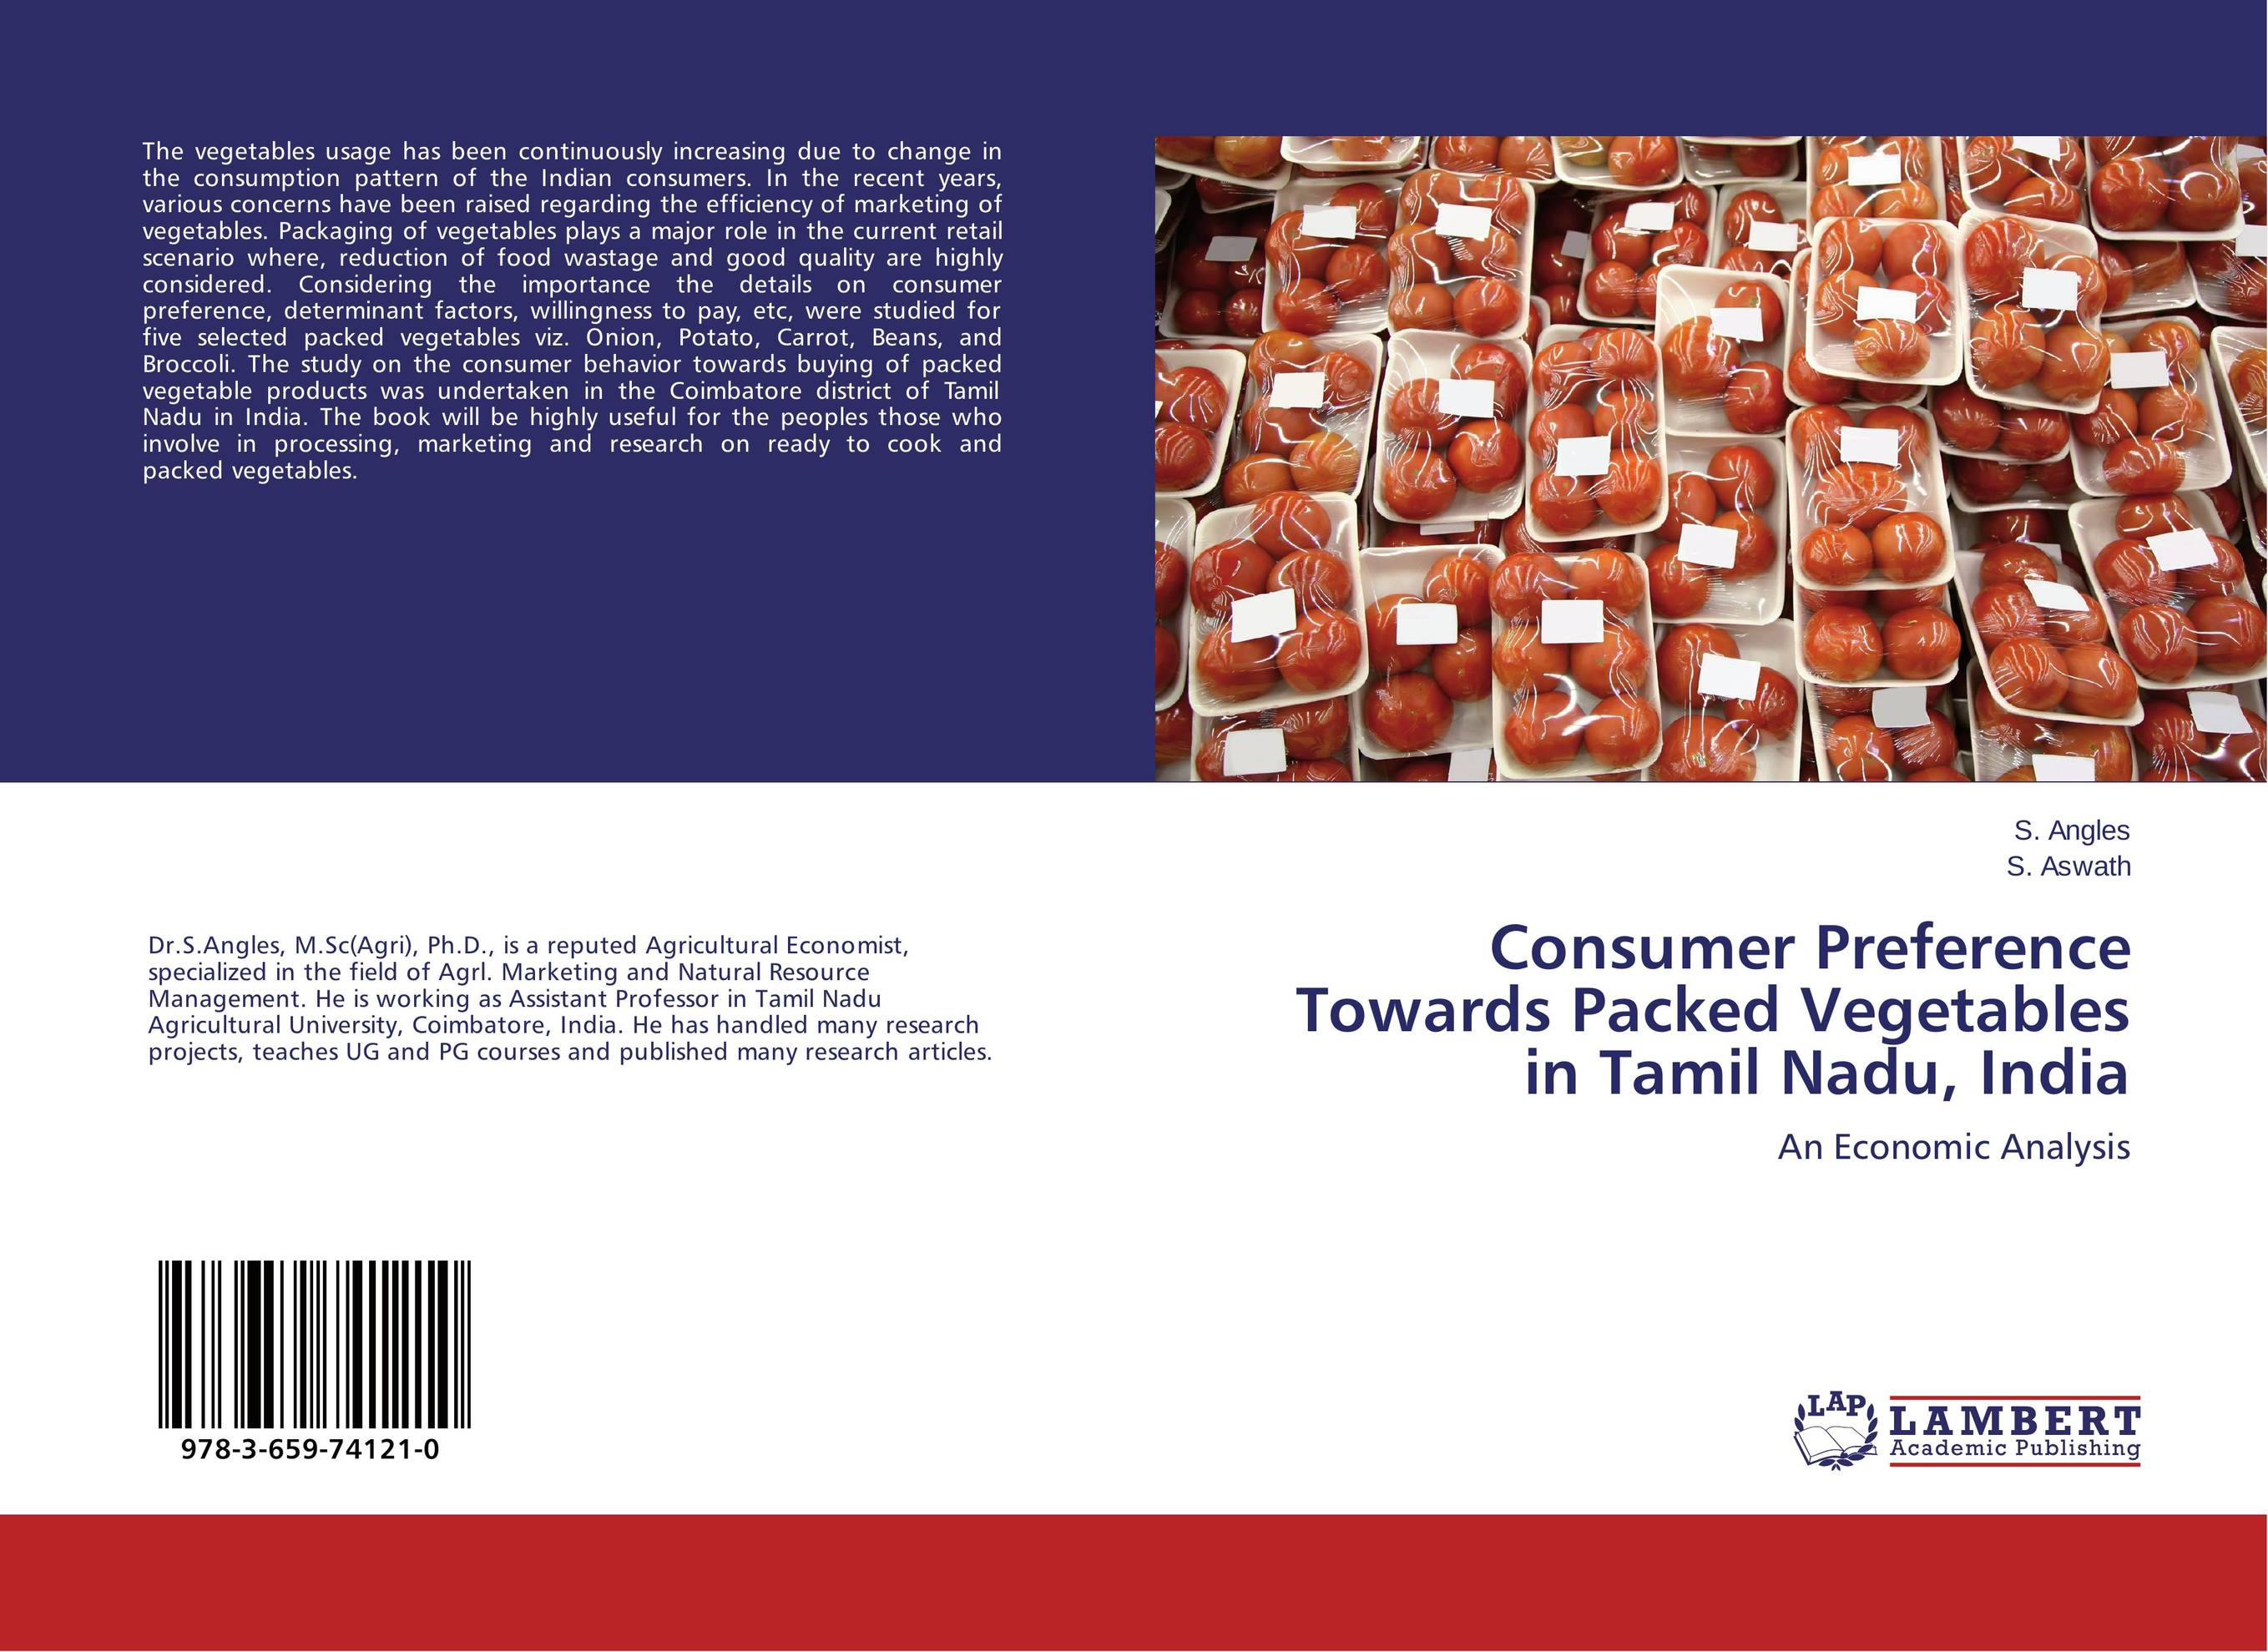 Consumer Preference Towards Packed Vegetables in Tamil Nadu, India the effect of advertisement on consumer behavior and brand preference